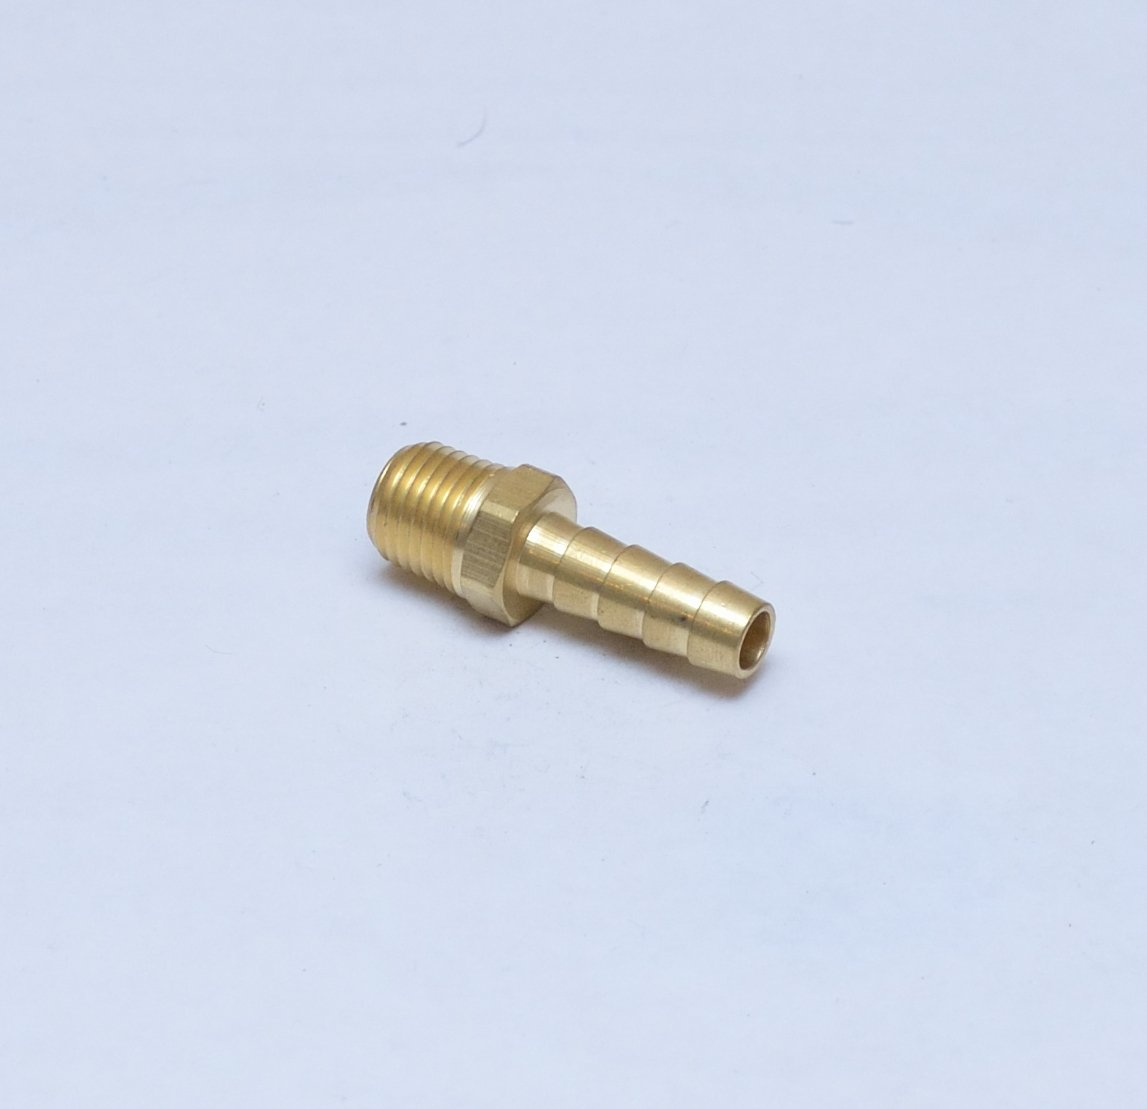 "FasParts 5/16"" Hose ID / Hose Barb to 1/4"" Male NPT MIP MPT Straight Brass Fitting Fuel / Air / Water / Boat / Gas / Oil WOG"